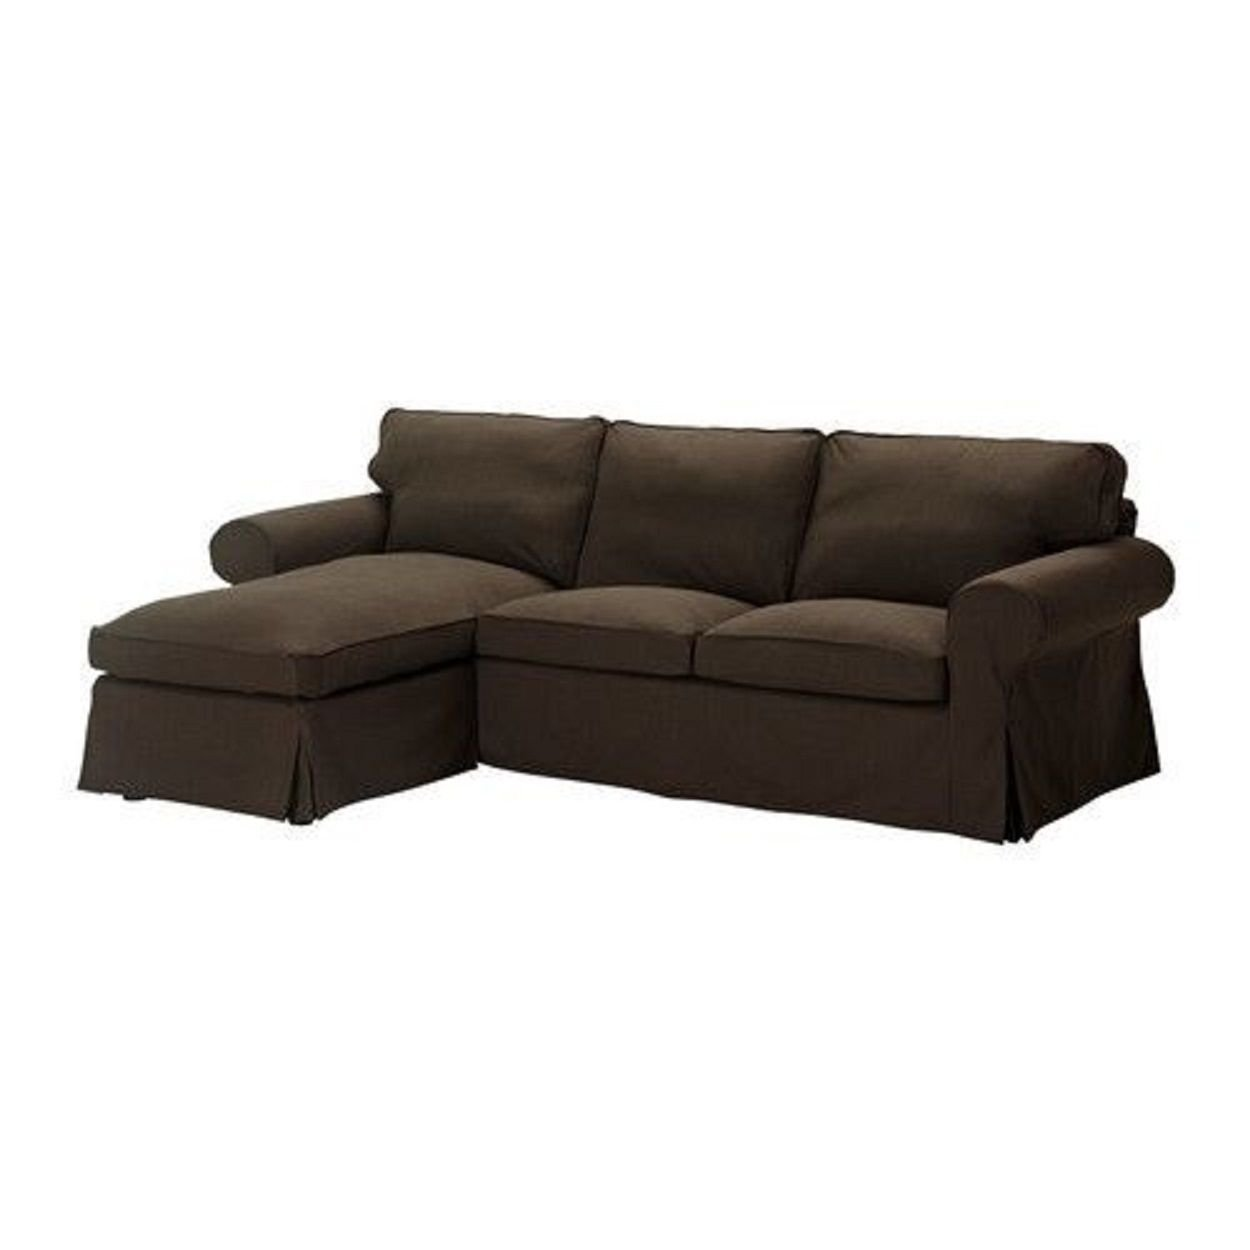 ikea ektorp 2 seat sofa chaise cover svanby brown. Black Bedroom Furniture Sets. Home Design Ideas